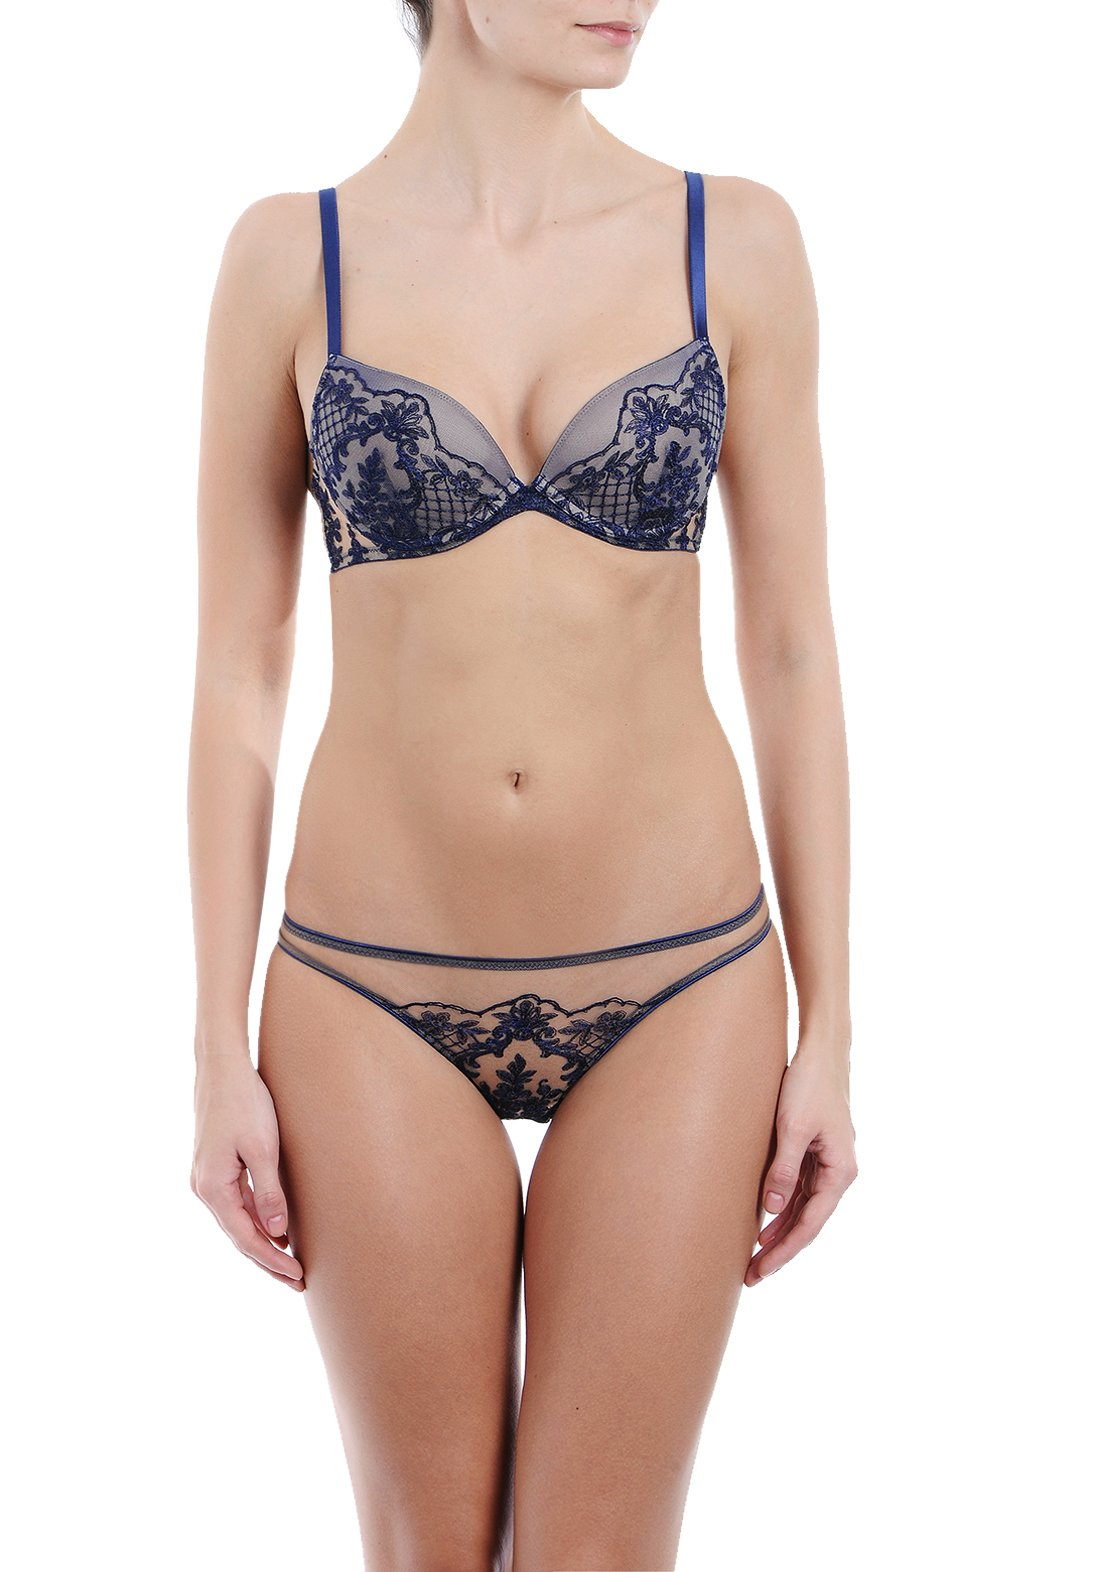 Accord Privé Padded Bra in Deep Marine